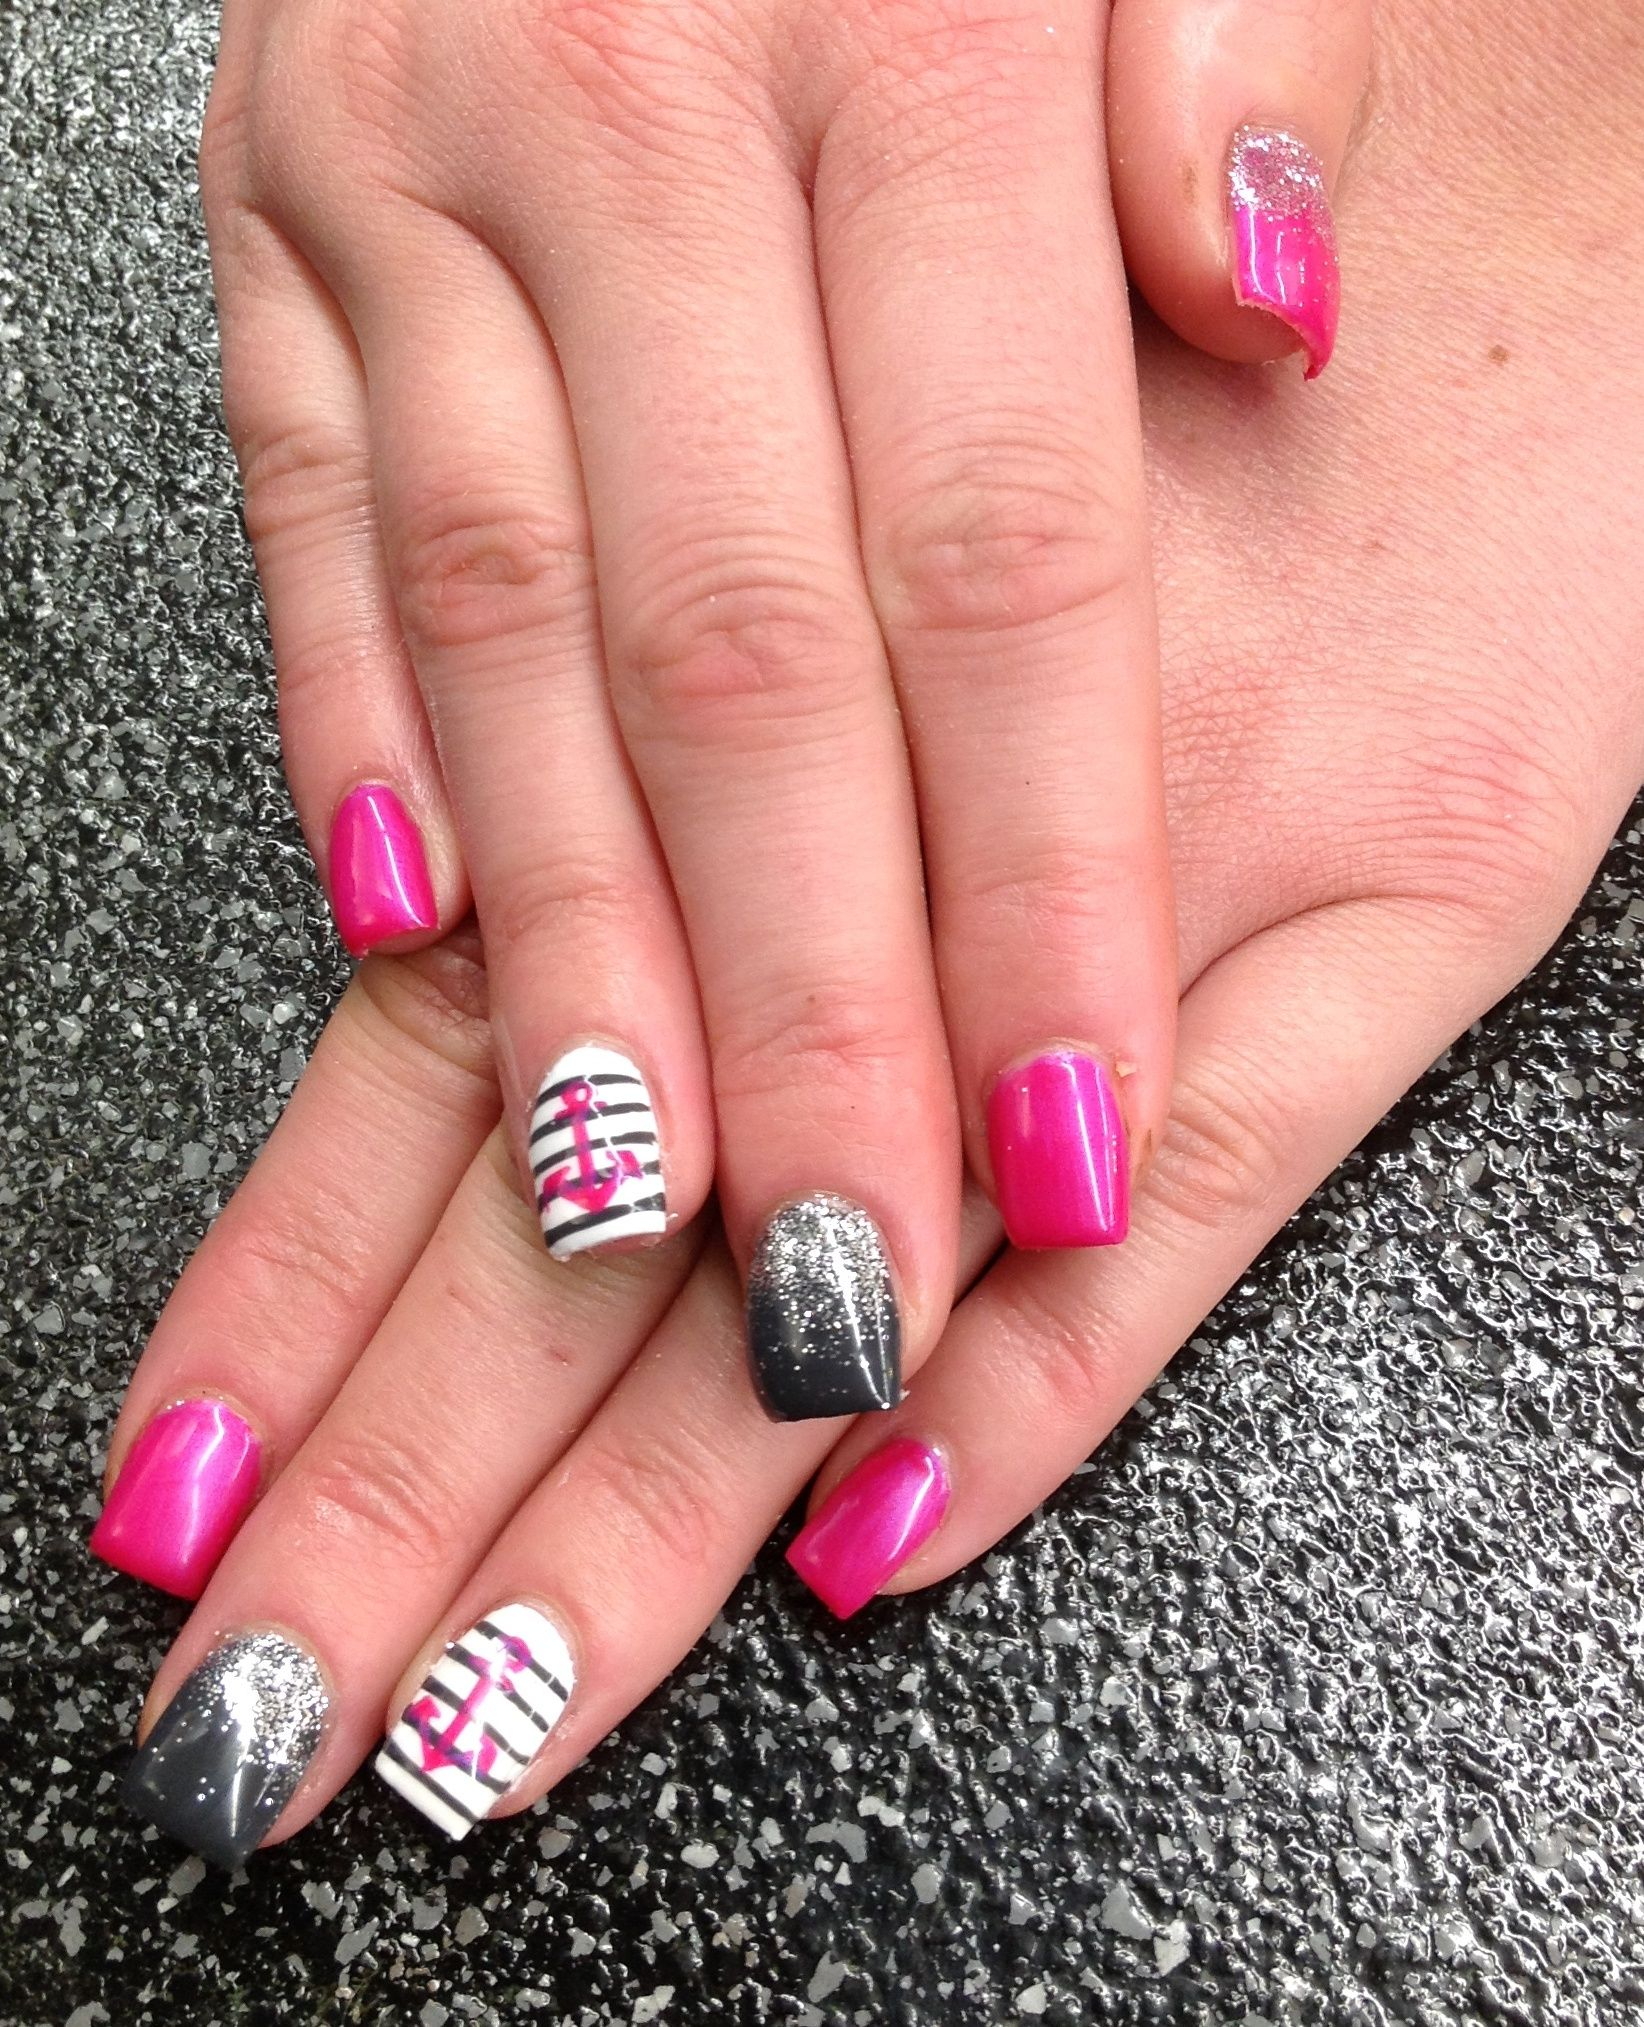 Amazing Nails By Lee Mold - Nail Paint Ideas - microskincareinc.us